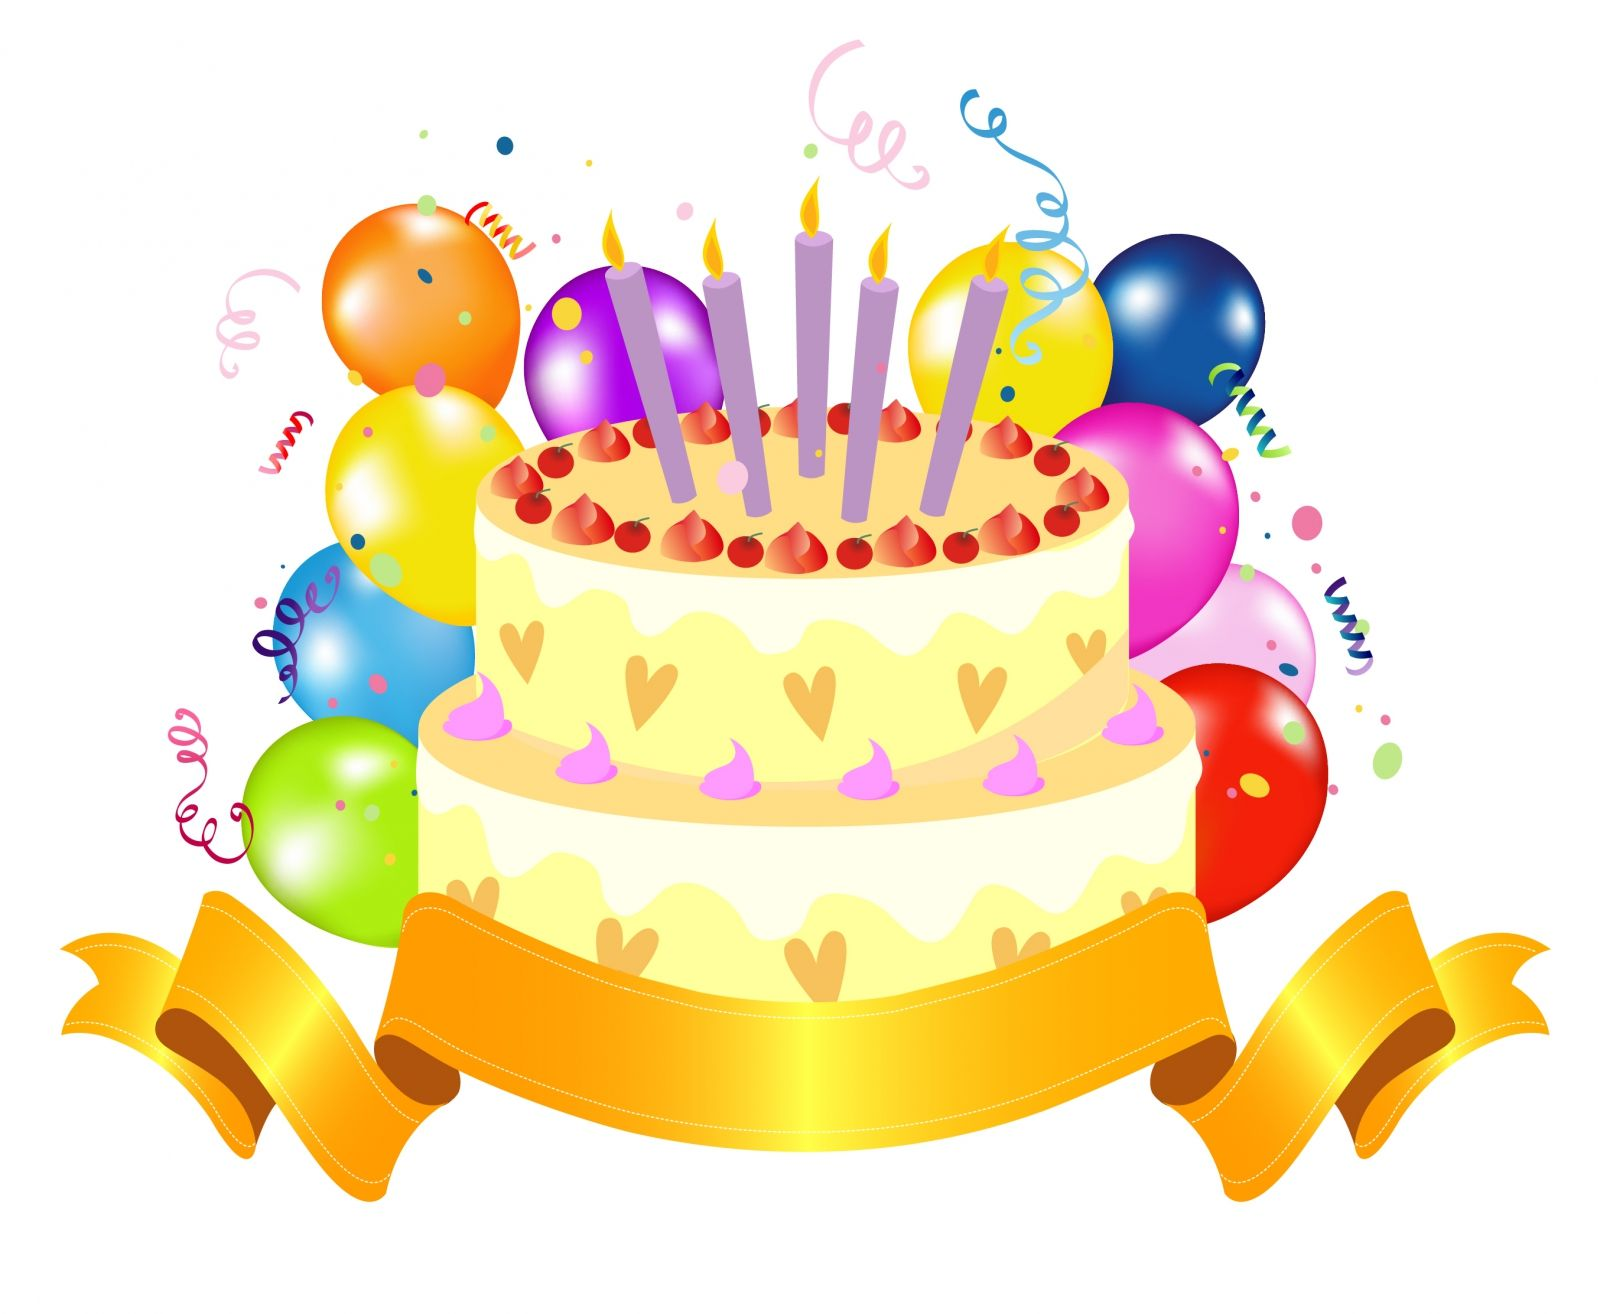 Astounding Free Vector Birthday Cake Graphic Available For Free Download At Funny Birthday Cards Online Alyptdamsfinfo